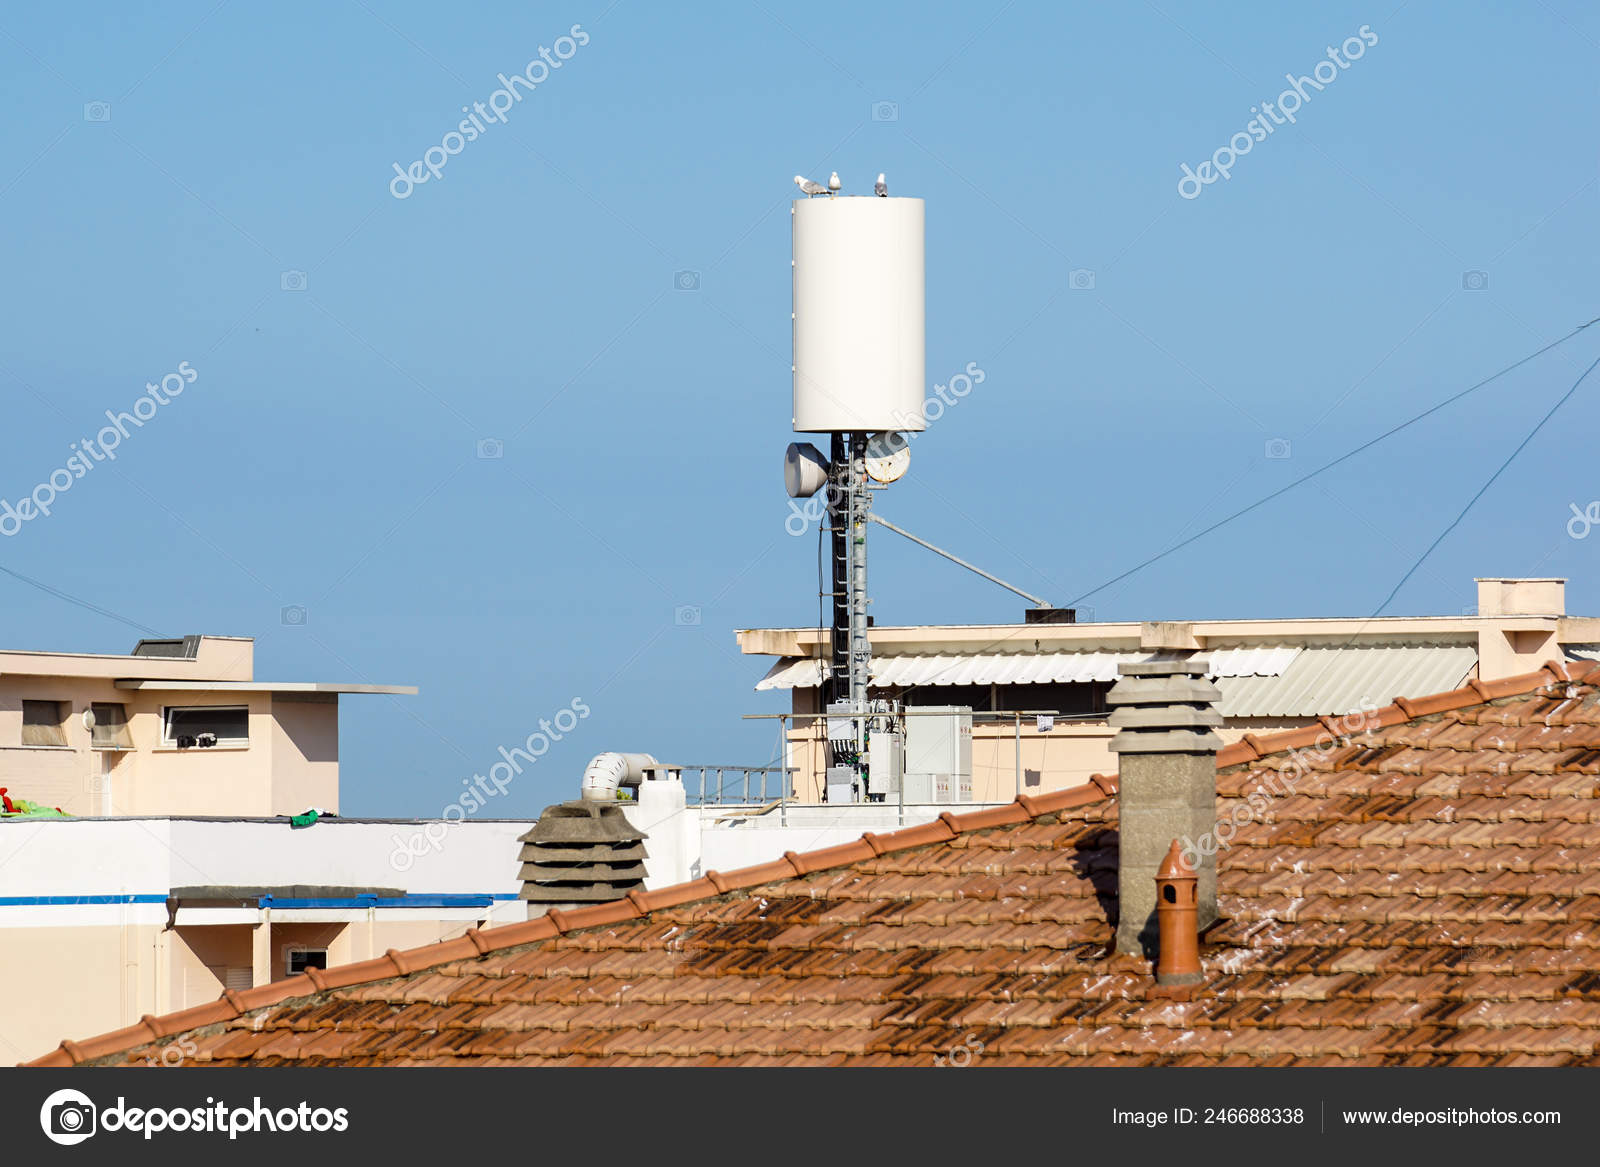 Mobile telephone radio network antennas on the building roof